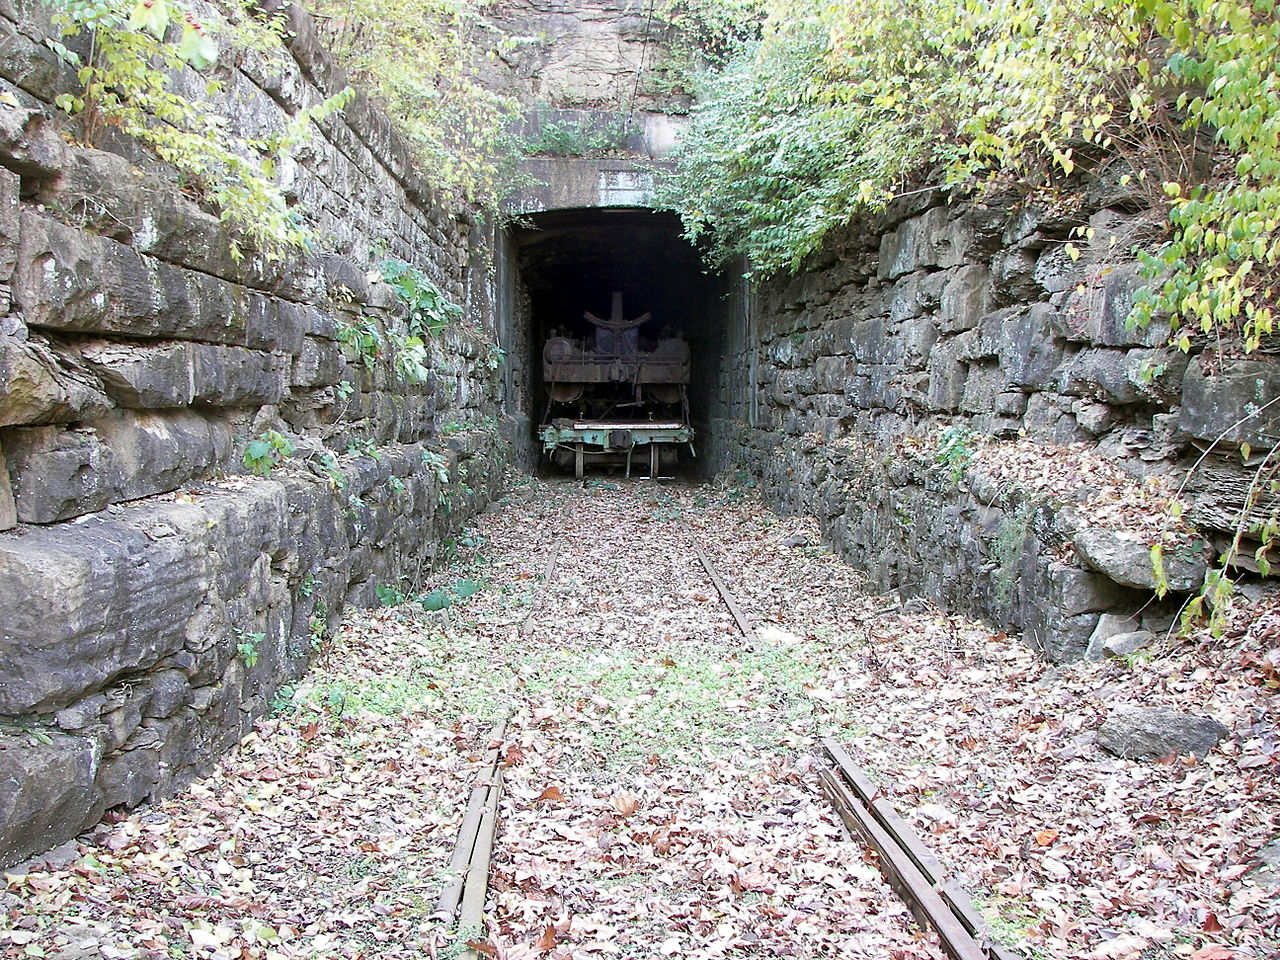 One of the Barretts Tunnels